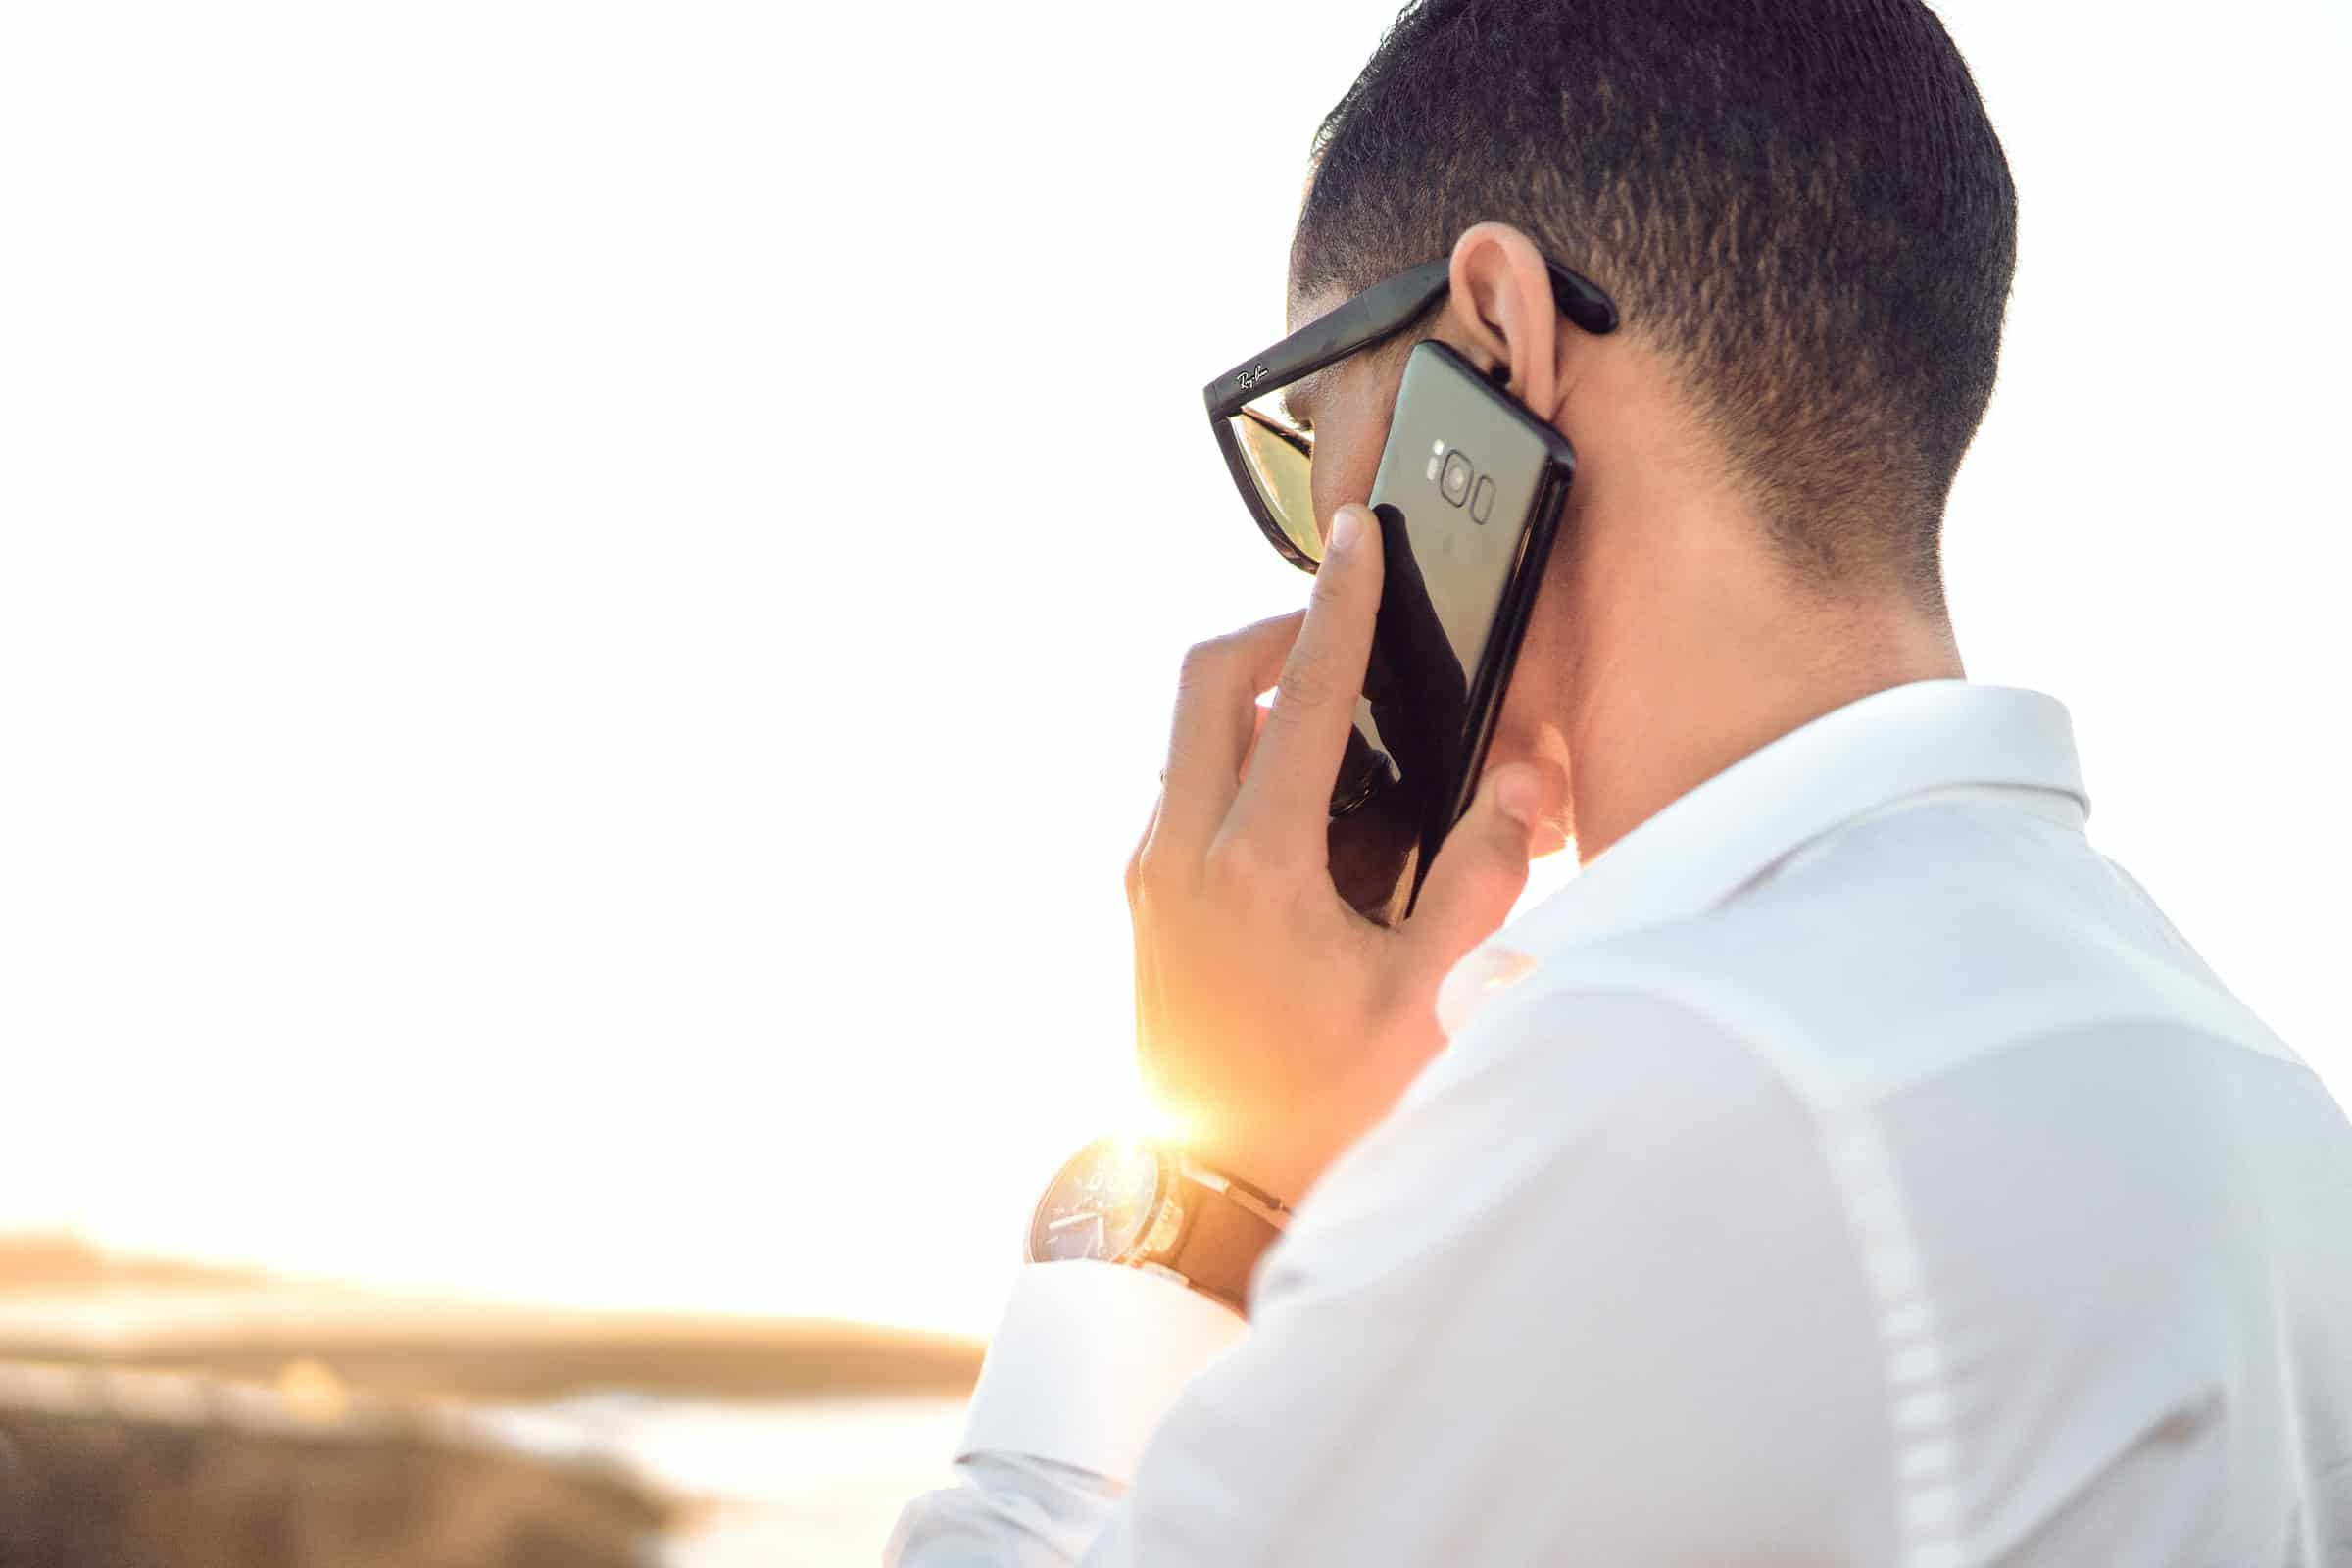 How to set up call waiting on Android: 3 methods